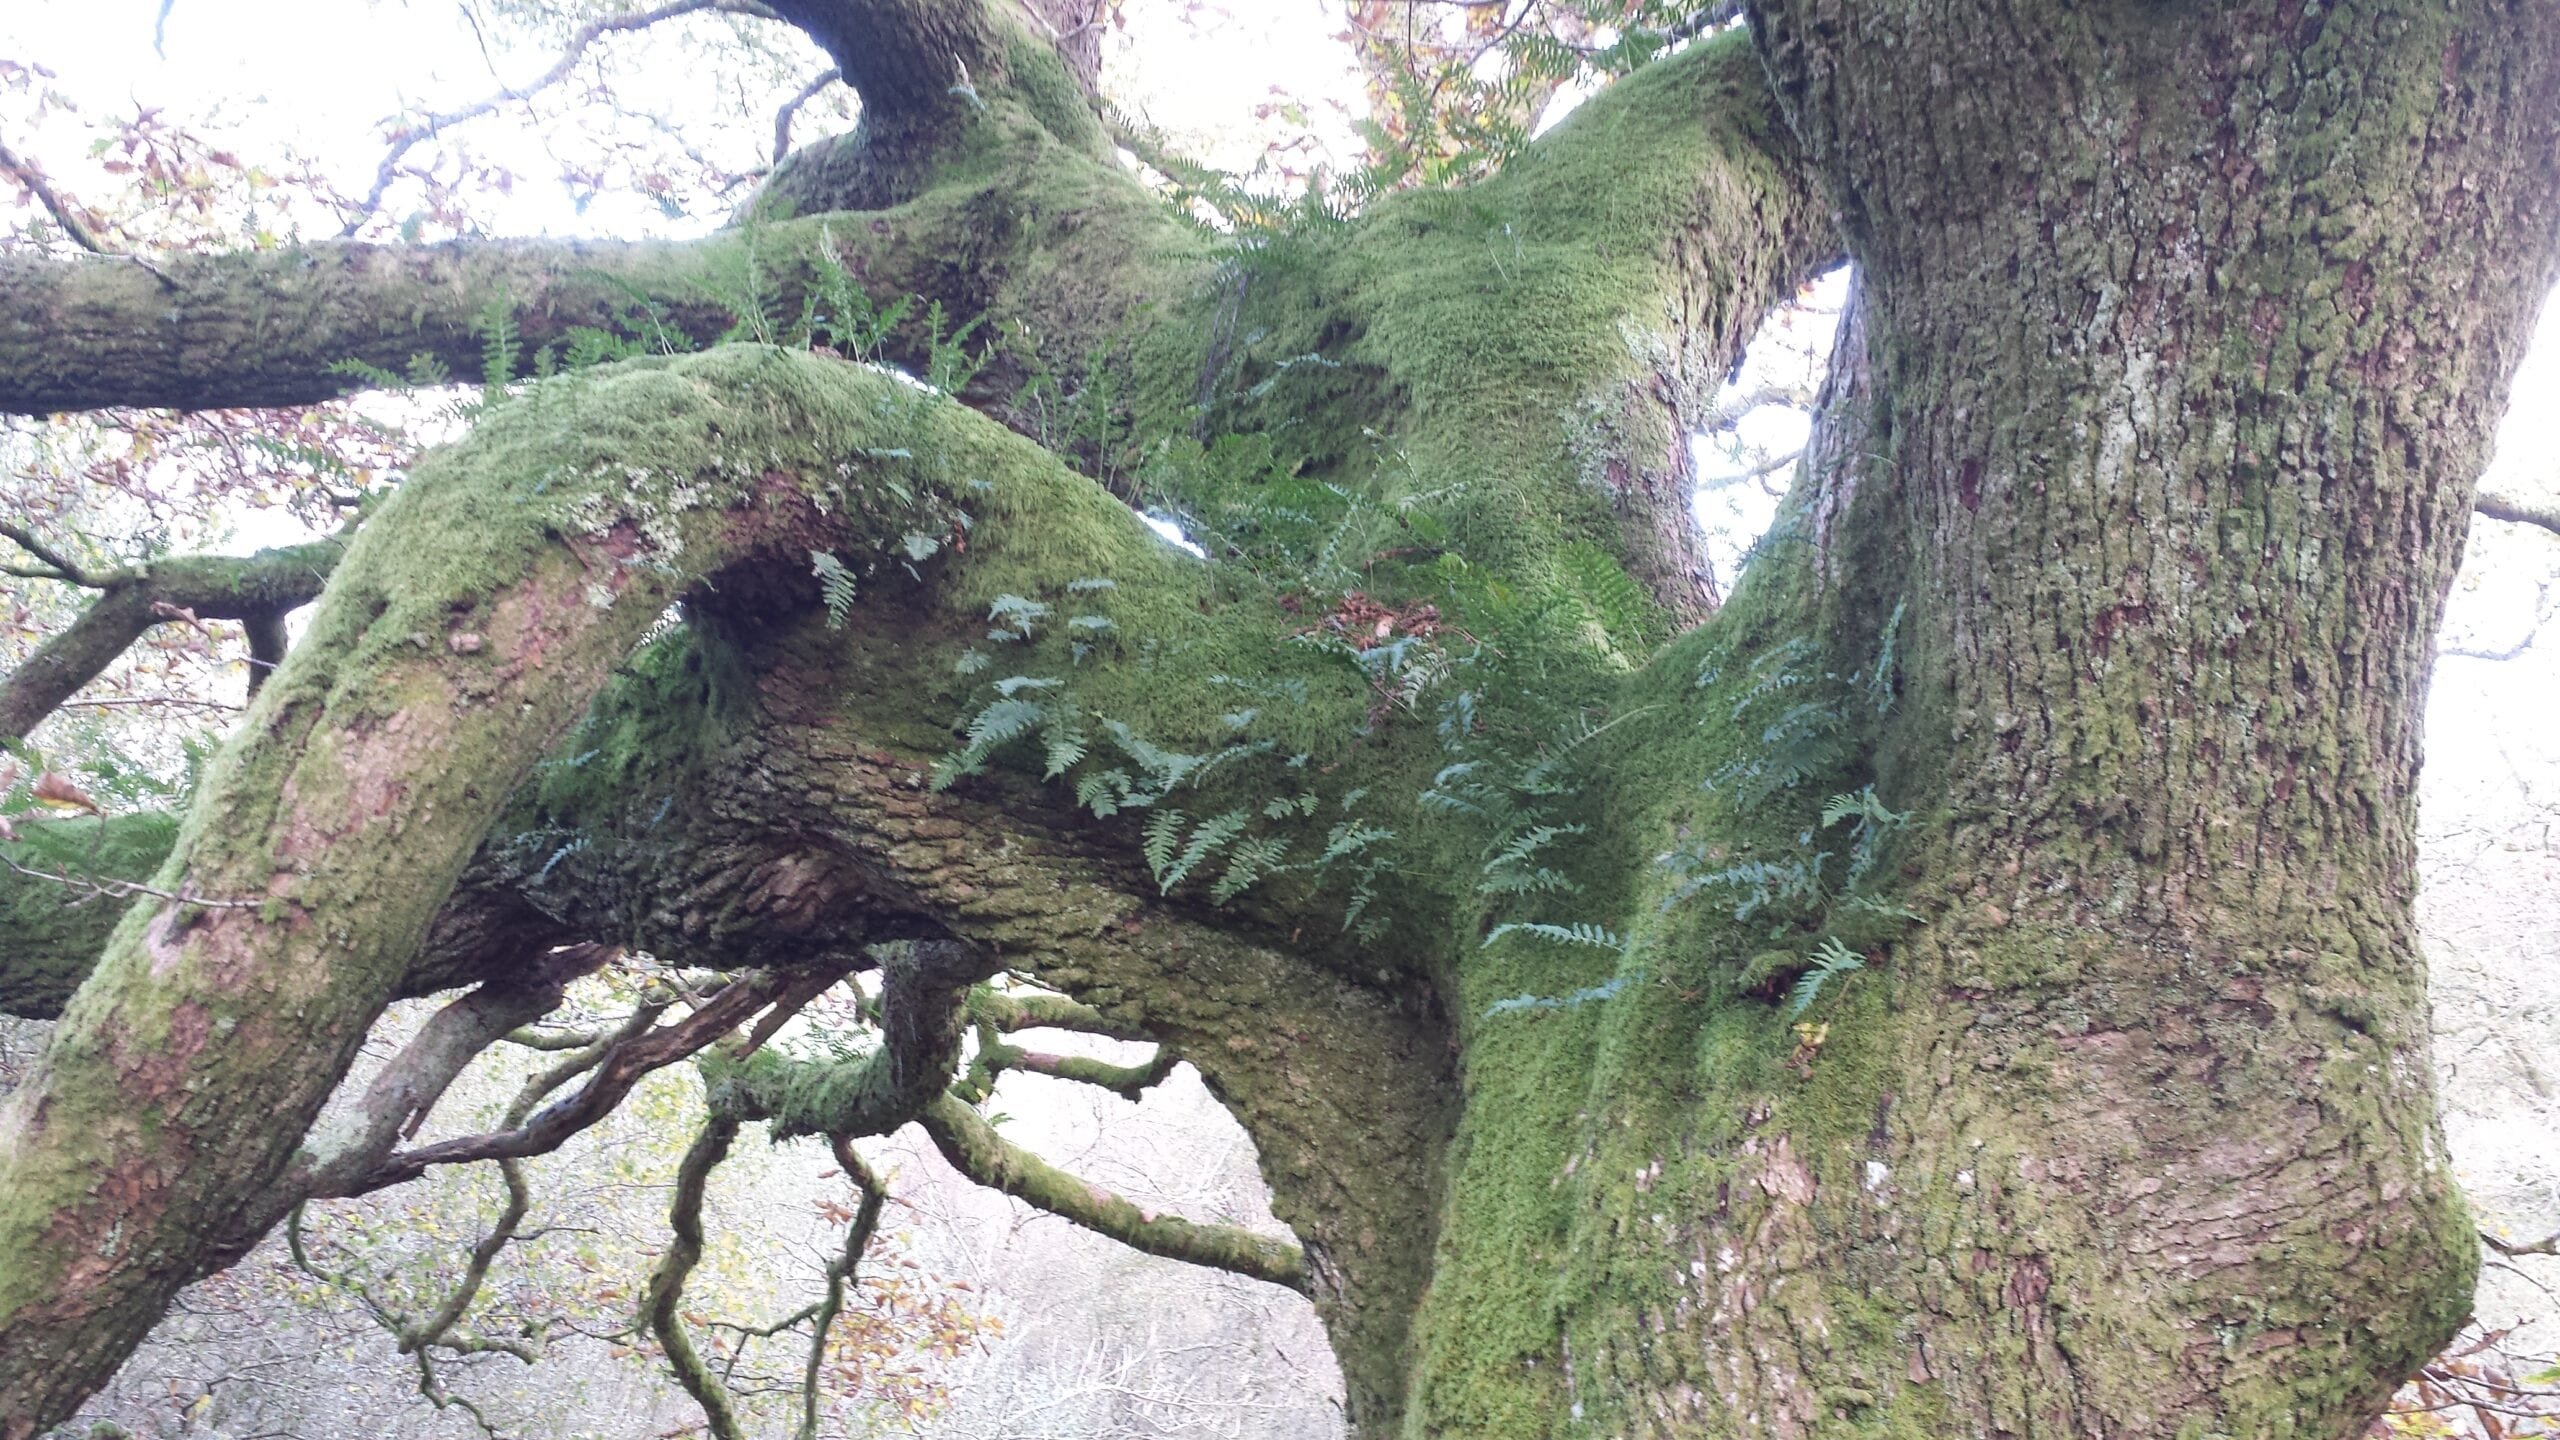 Moss and ferns on tree